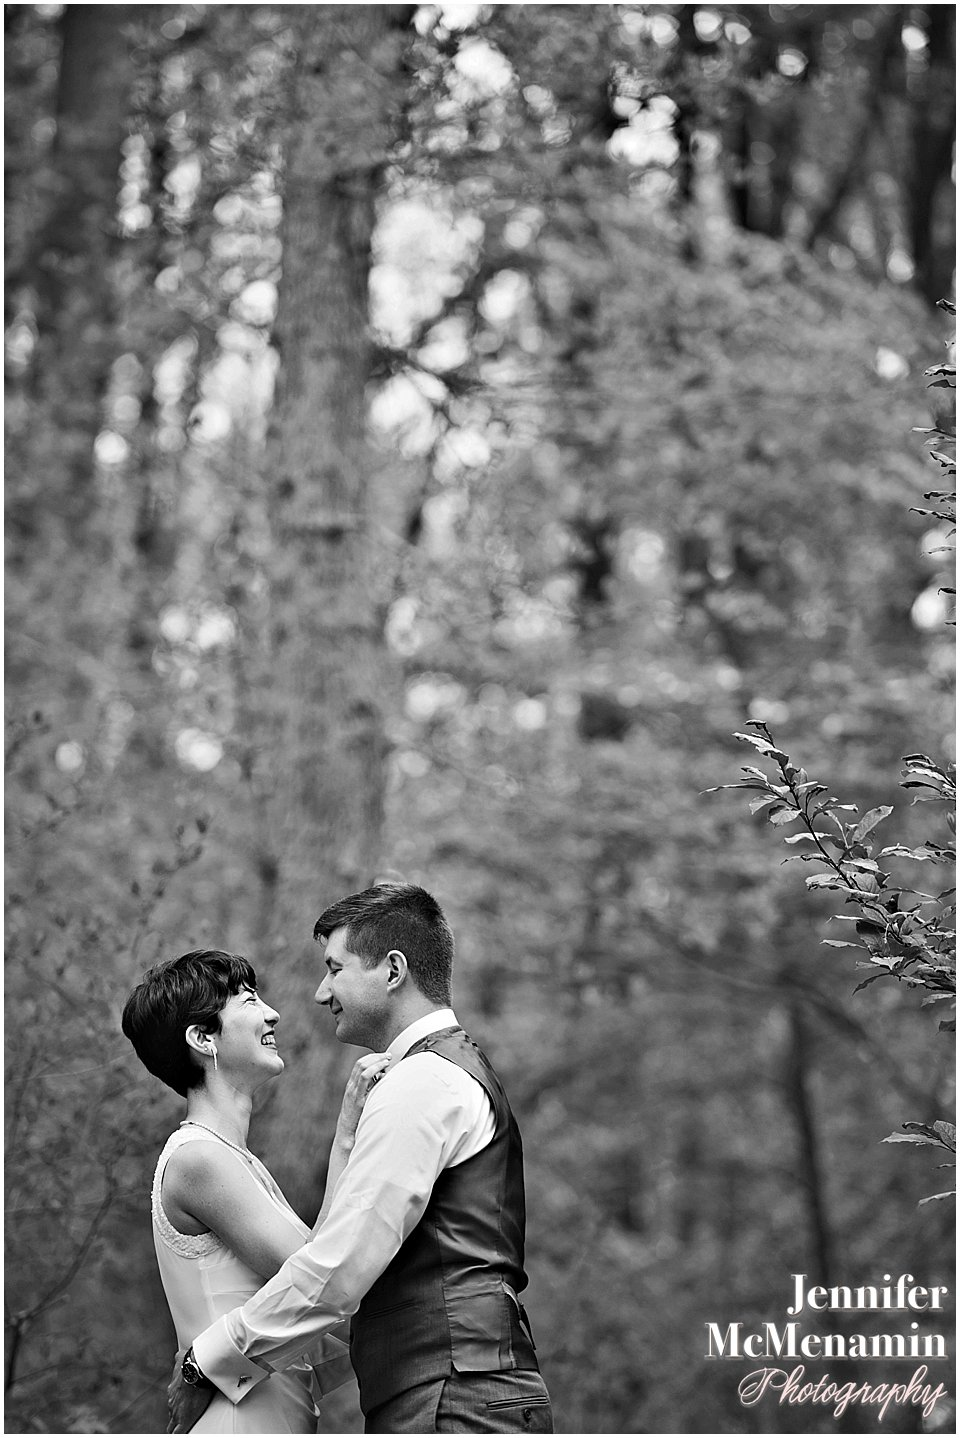 010-EastonNovikov_00273bw-0064_Jennifer-McMenamin-Photography-Irvine-Nature-Center-wedding